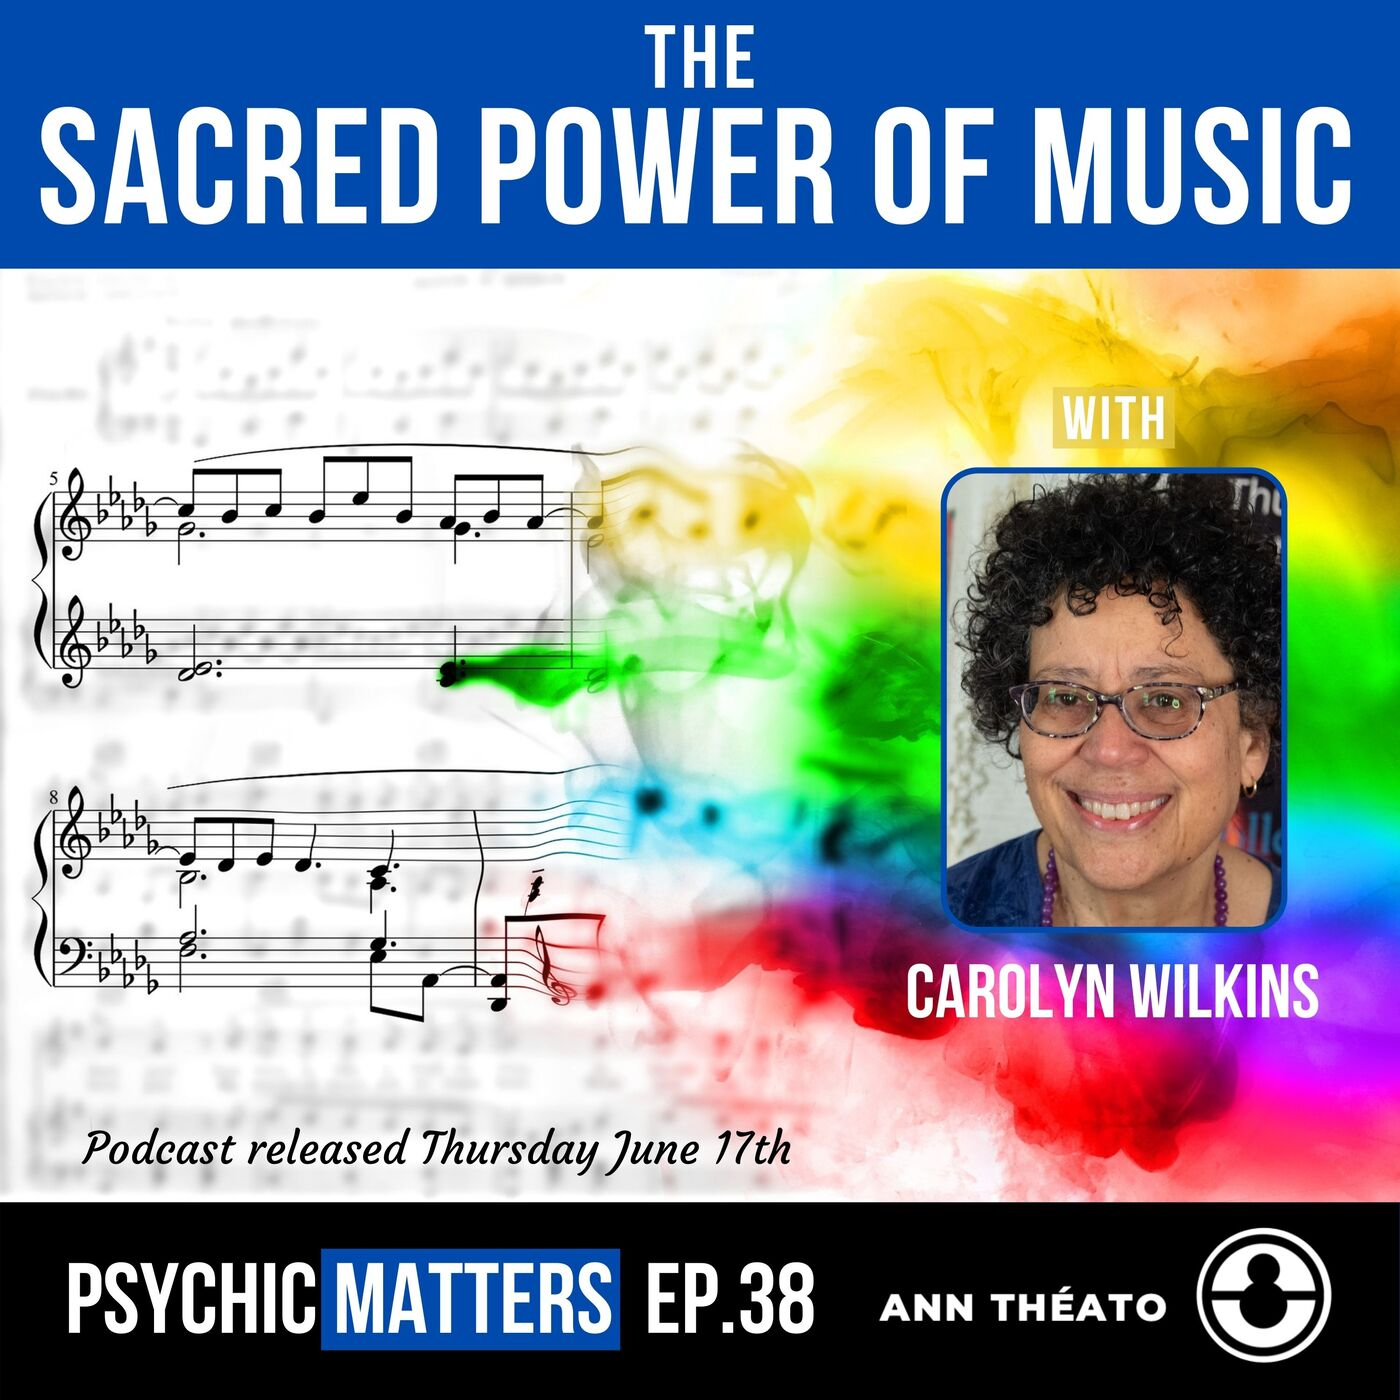 PM 038: The Sacred Power Of Music with Carolyn Wilkins